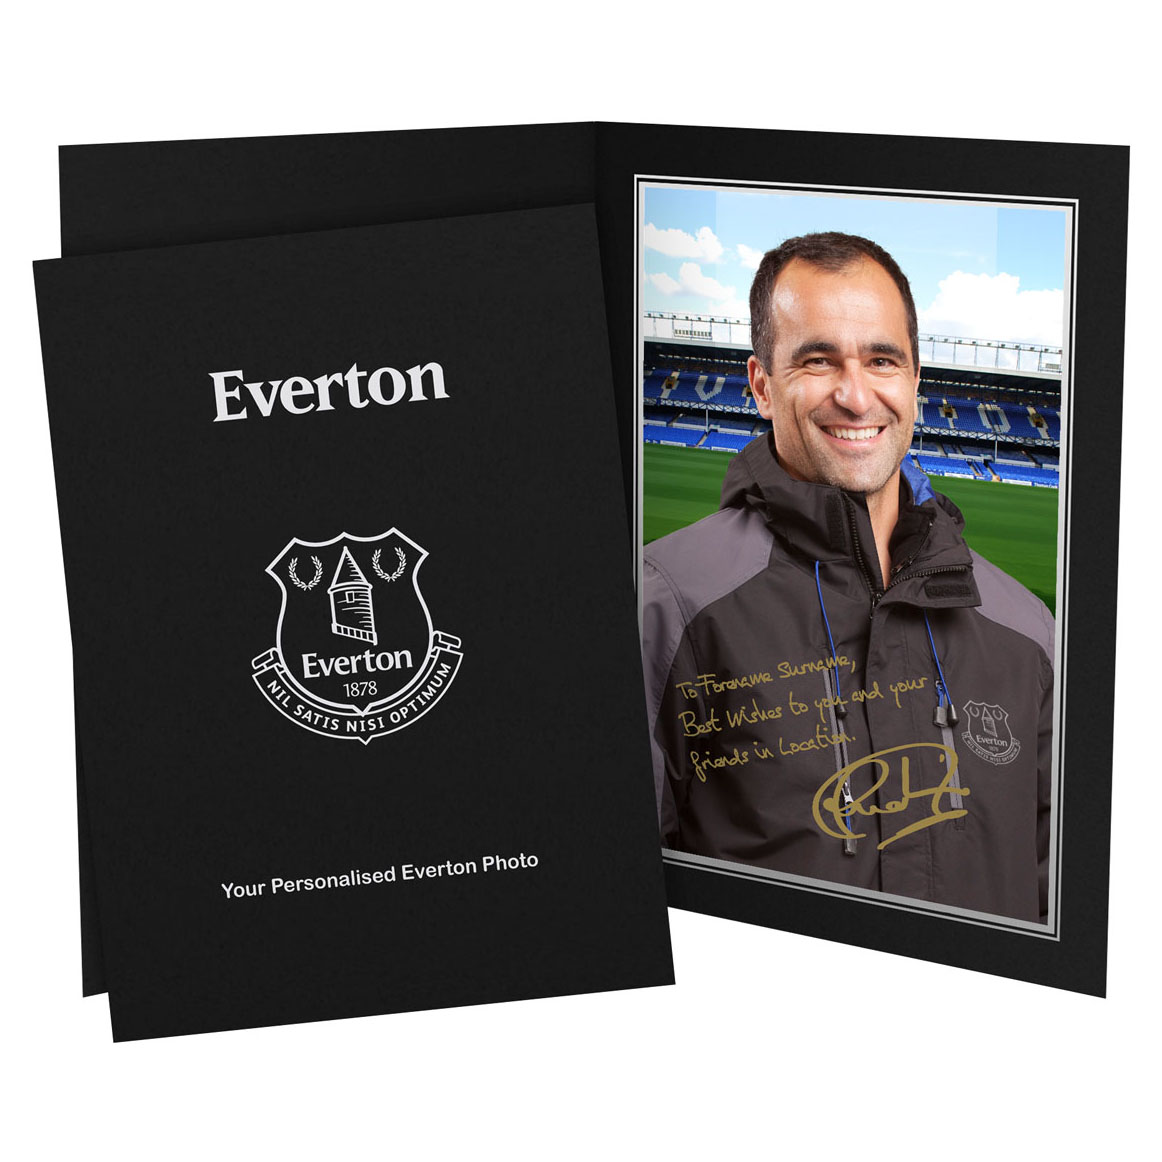 Everton Personalised Signature Photo in Presentation Folder - Martinez